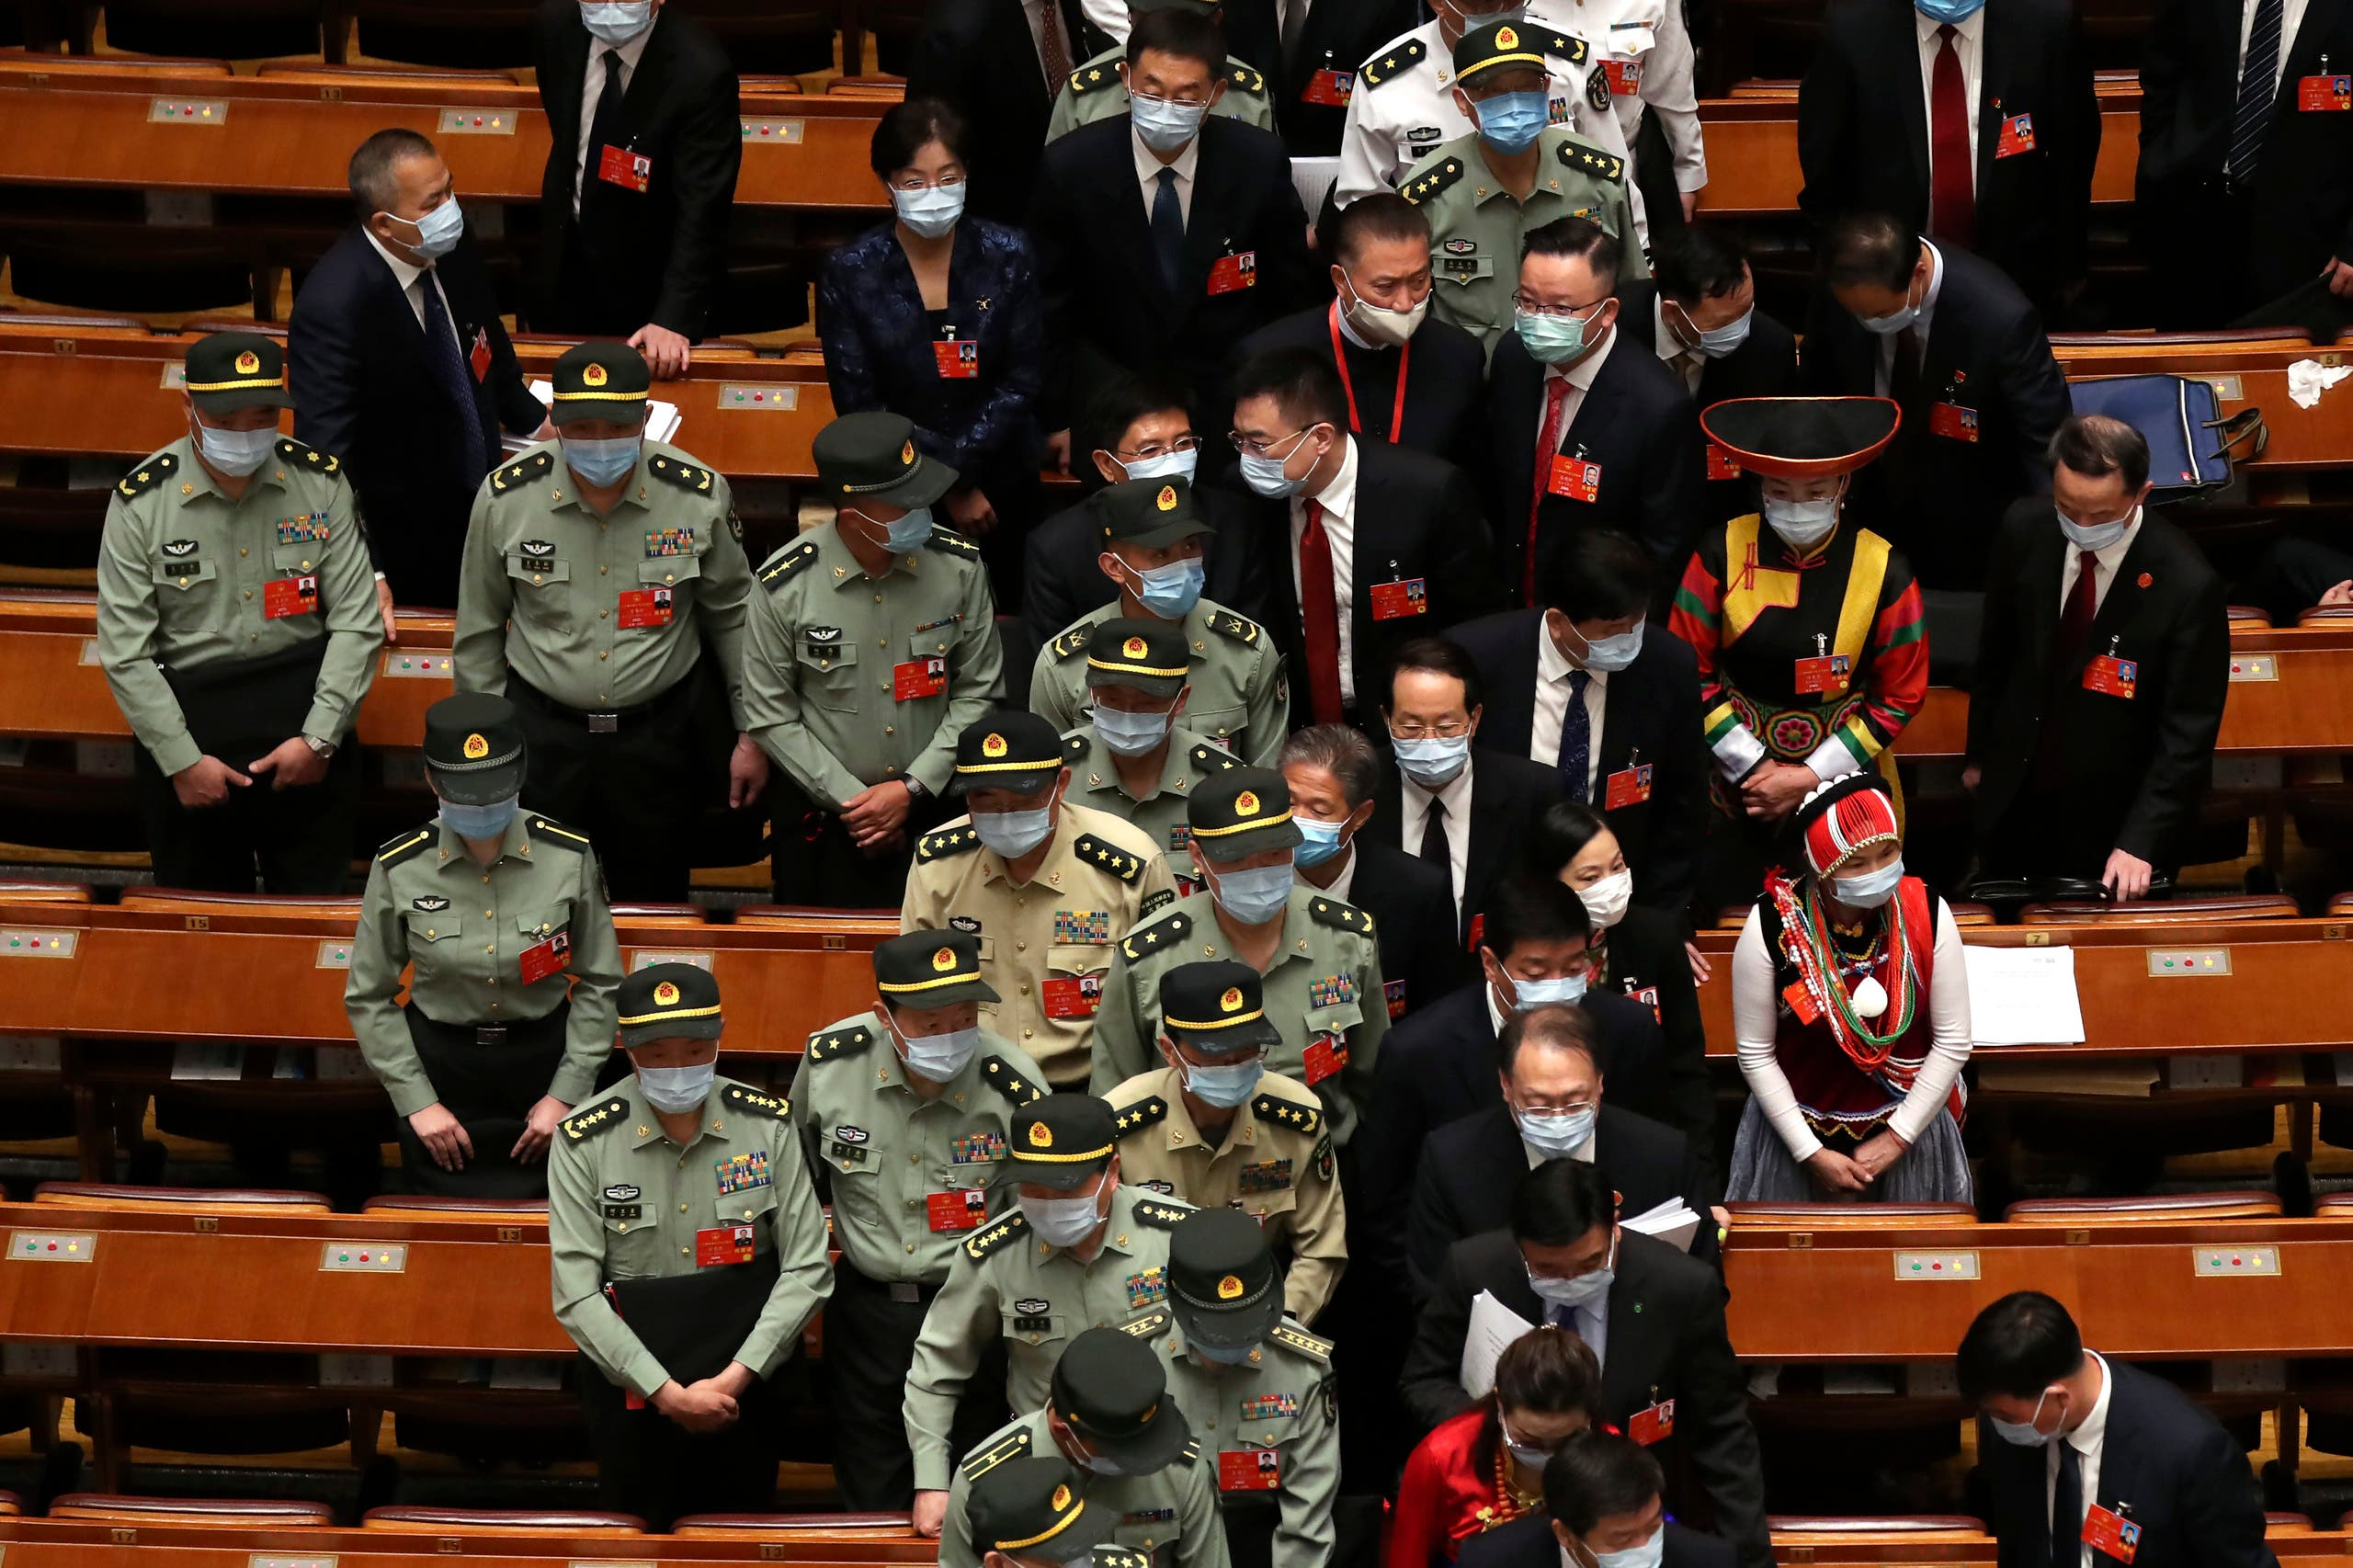 Military delegates leave after the opening session of China's National People's Congress (NPC) at the Great Hall of the People in Beijing on May 22, 2020. (AP)